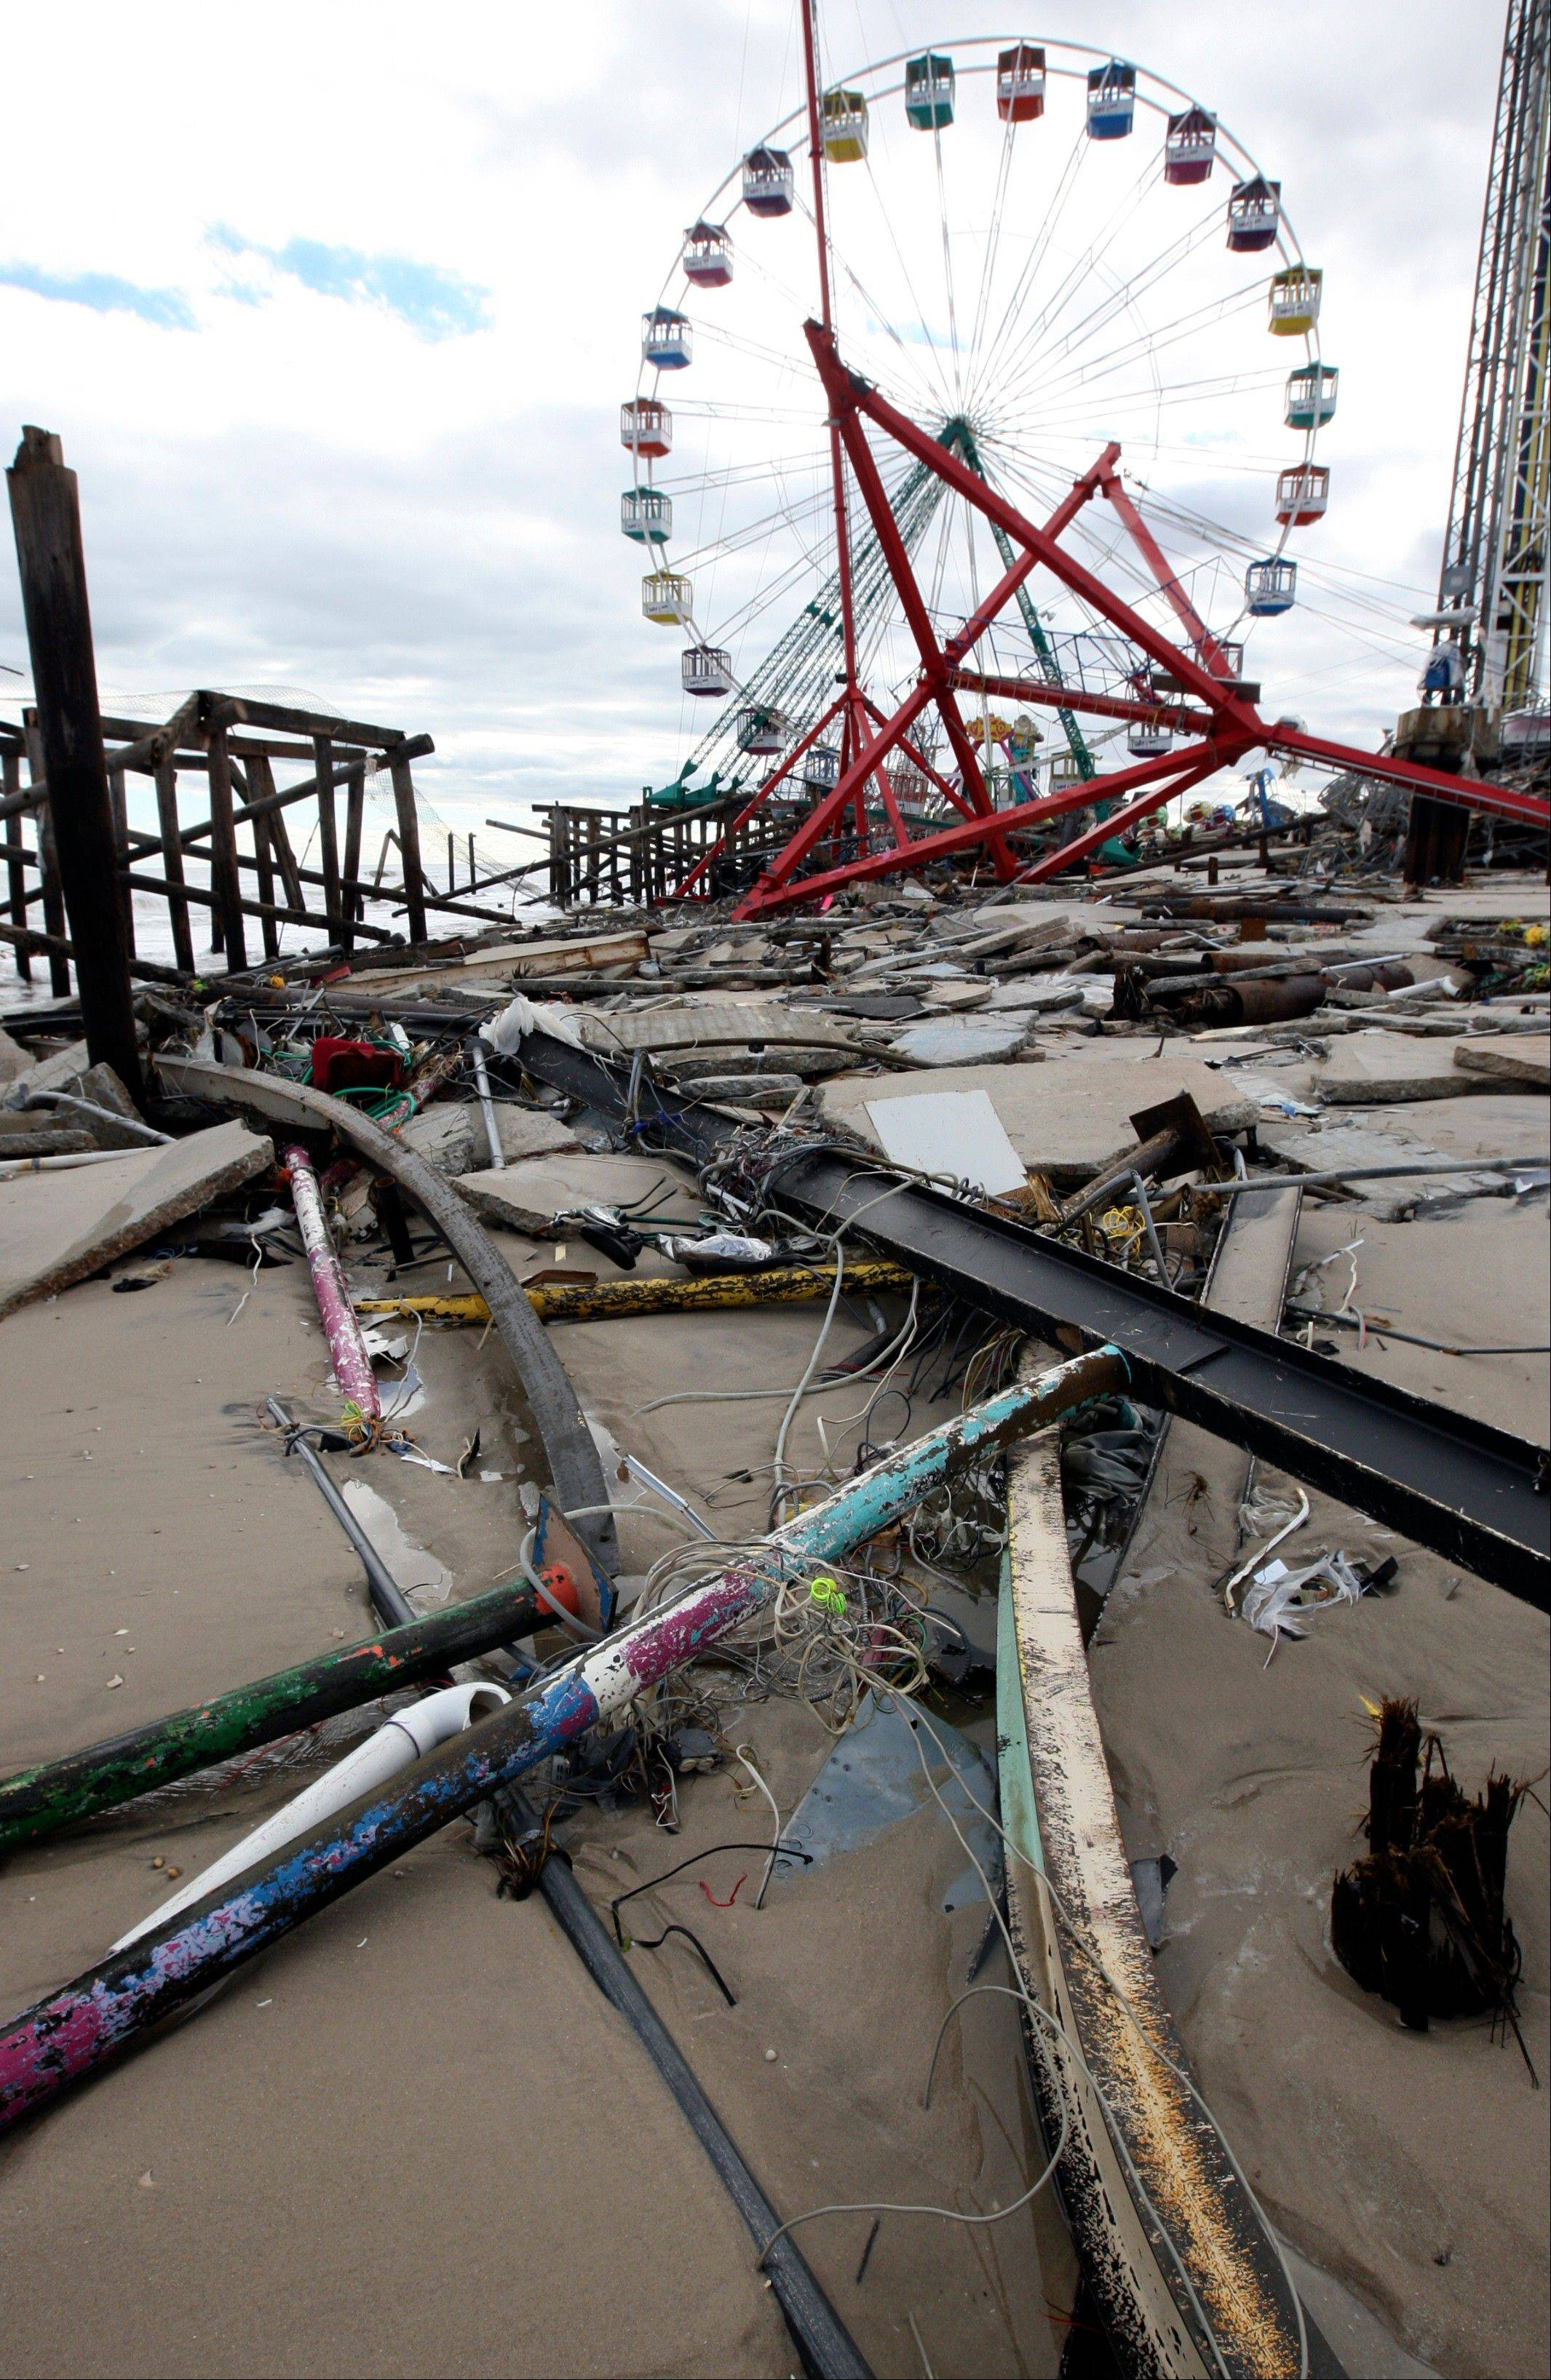 The Fun Town Pier in Seaside Heights, N.J. was heavily damaged by superstorm Sandy.